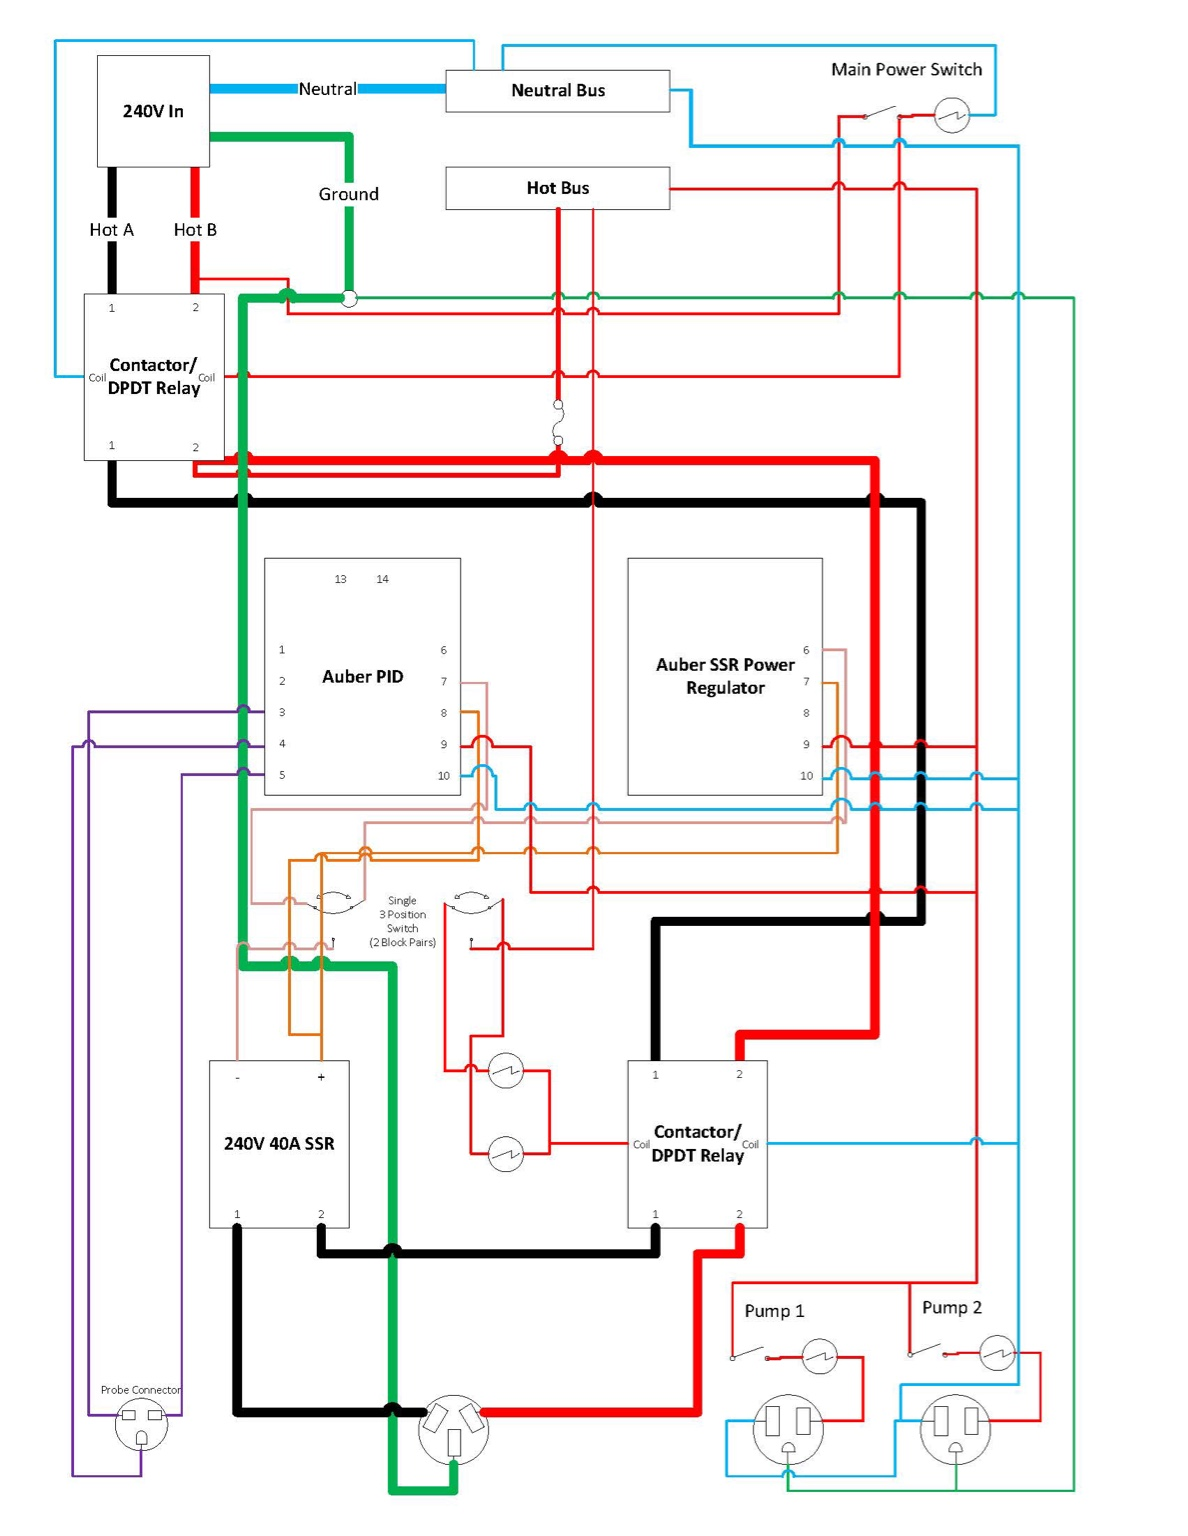 K Rims Breweasy Page 3 Equipment And Software Homebrewers Imo Relay Wiring Diagram Im At Around 400 Not Counting The Incoming Cable Gfci That Is 100 Less Compared To High Gravitys Sv Controller More Feature Packed